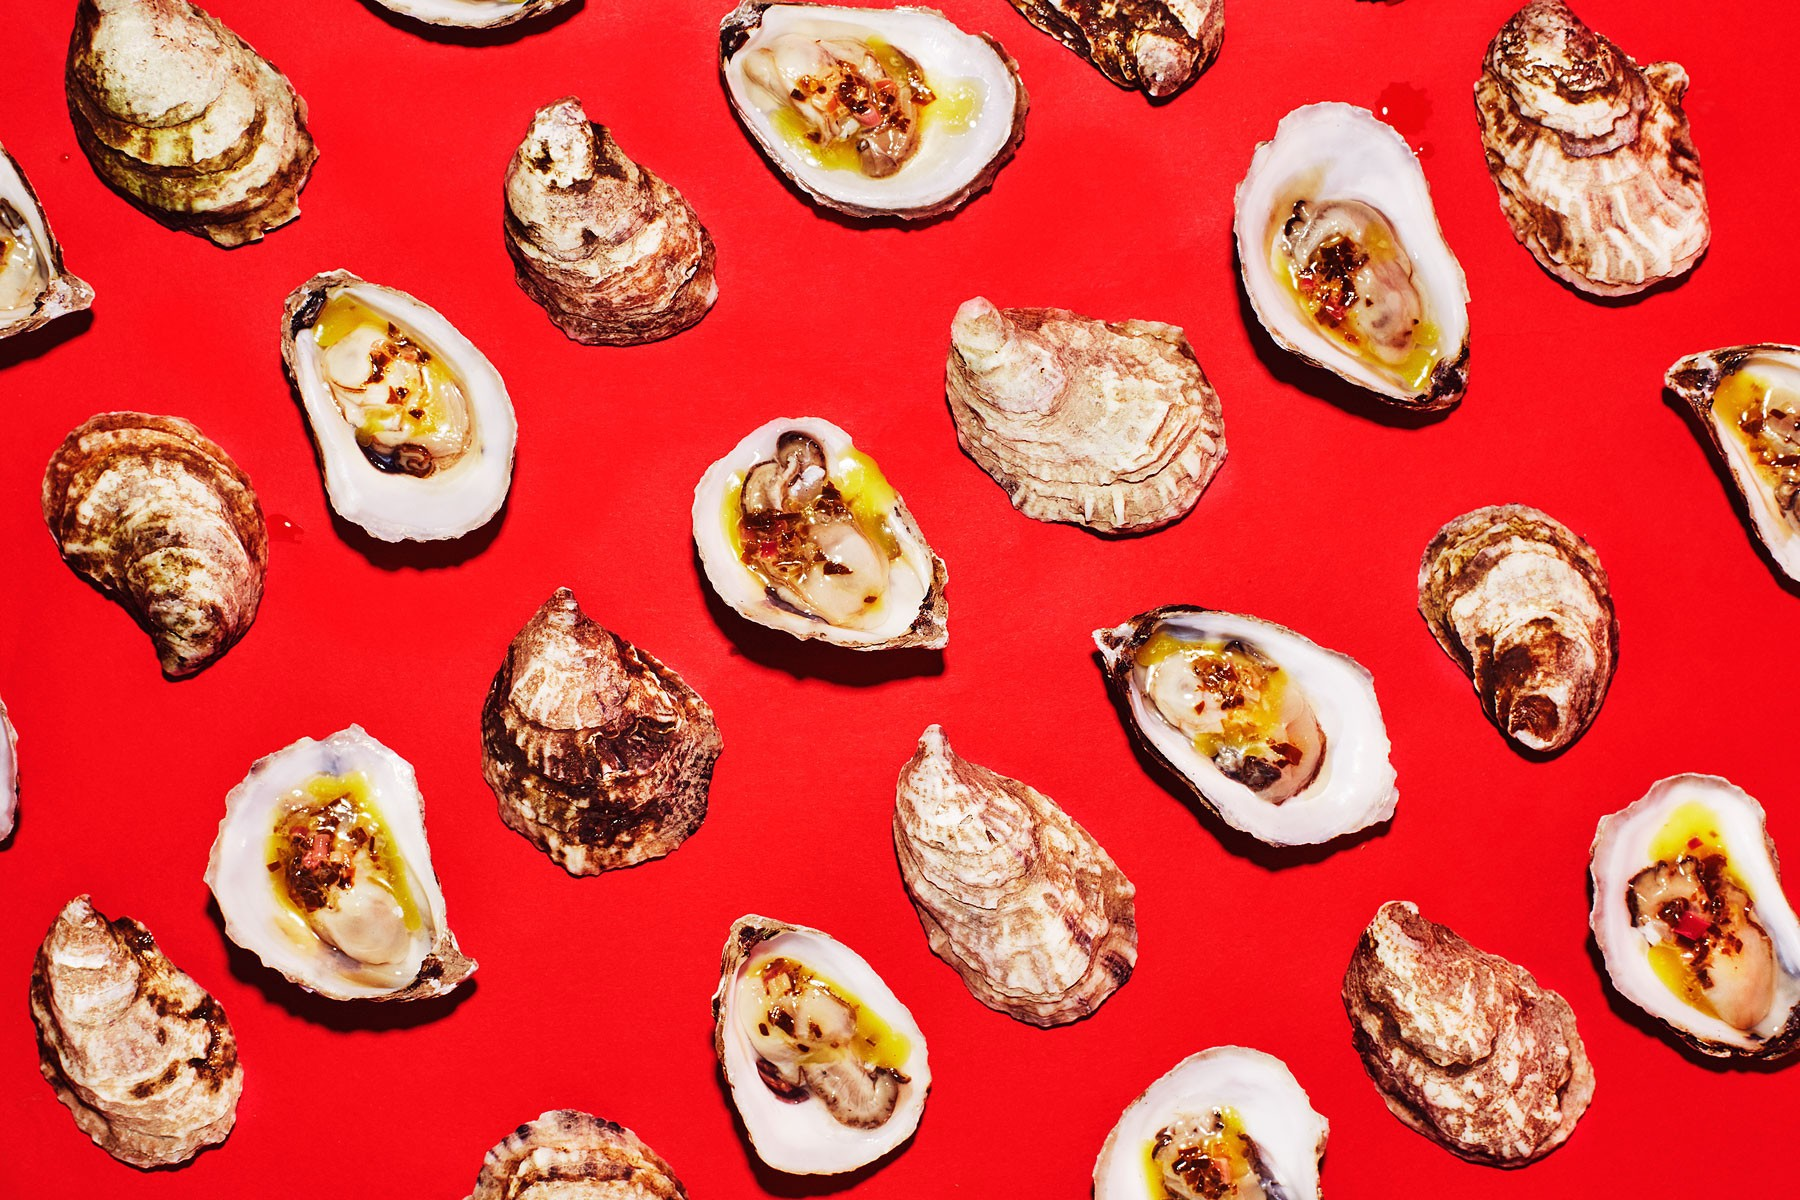 smoked-oysters-on-backround-rotated